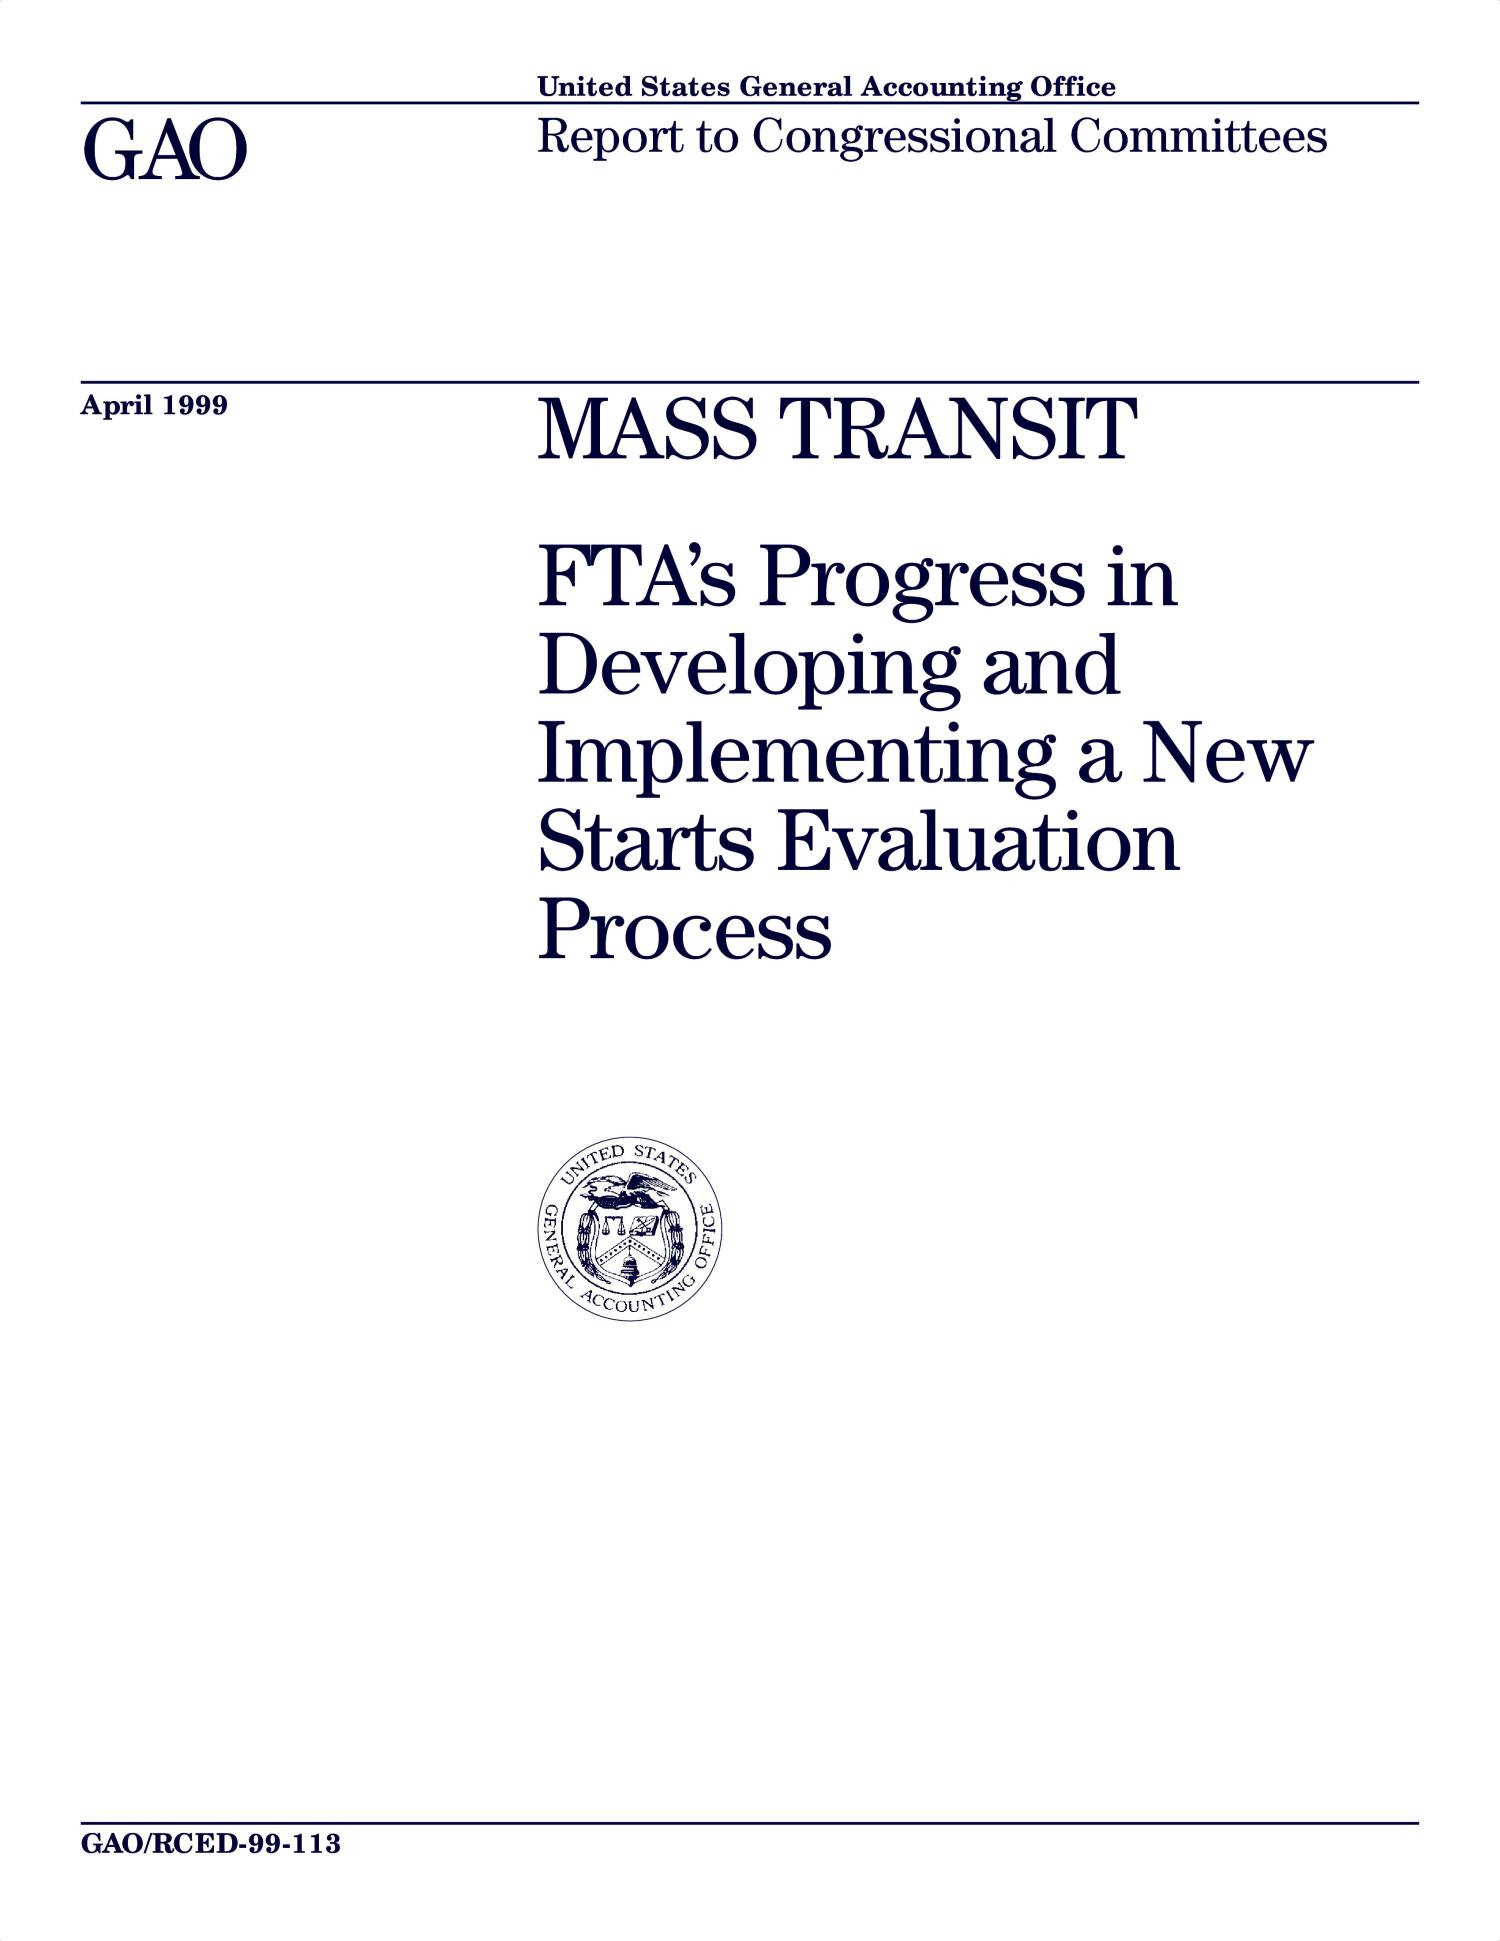 Mass Transit: FTA's Progress in Developing and Implementing a New Starts Evaluation Process                                                                                                      [Sequence #]: 1 of 24